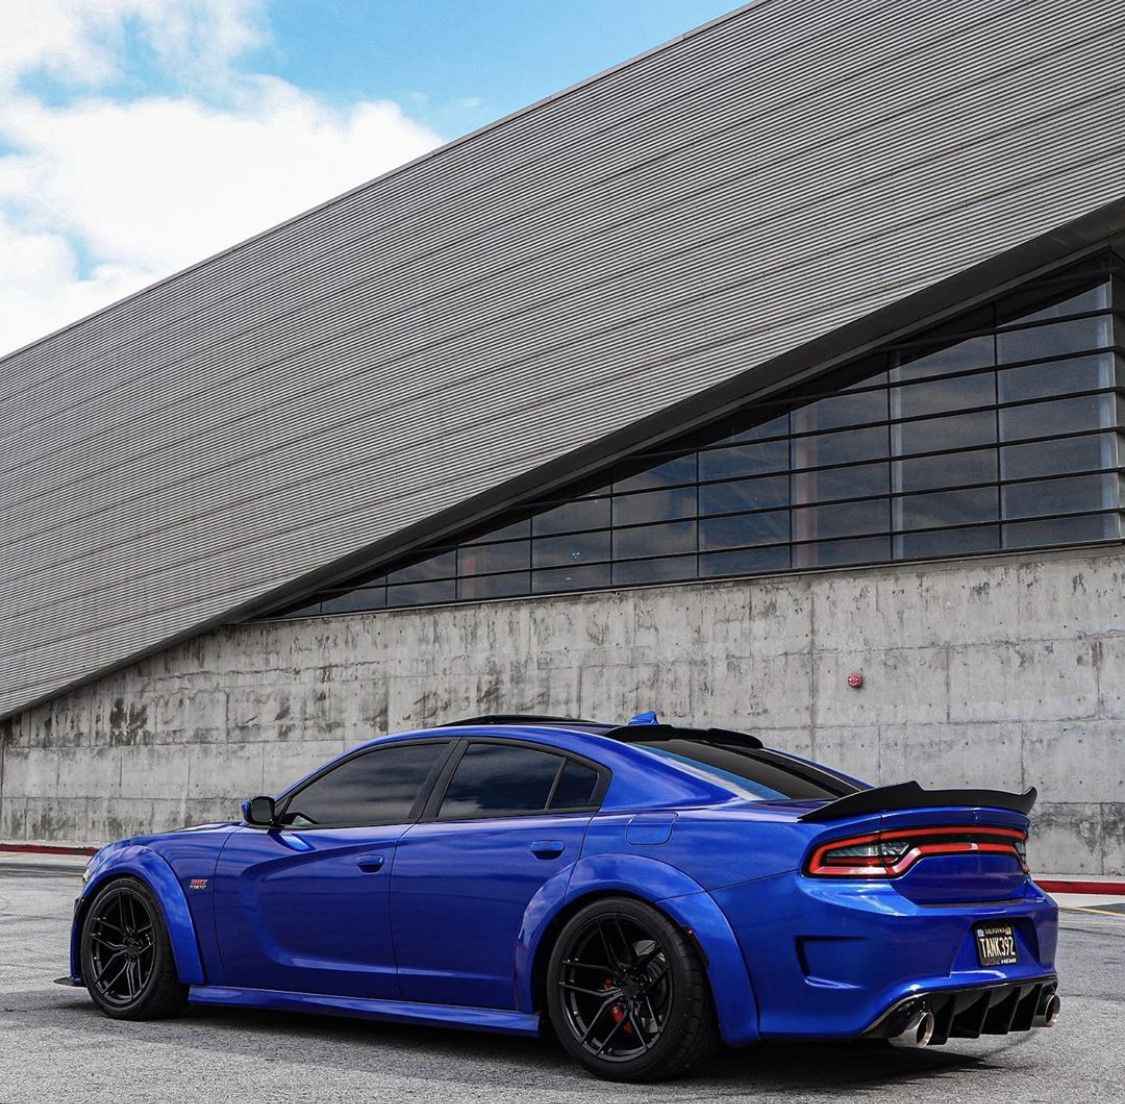 2020 Dodge Charger Widebody Scat Pack In 2020 Dodge Charger Dream Cars Mopar